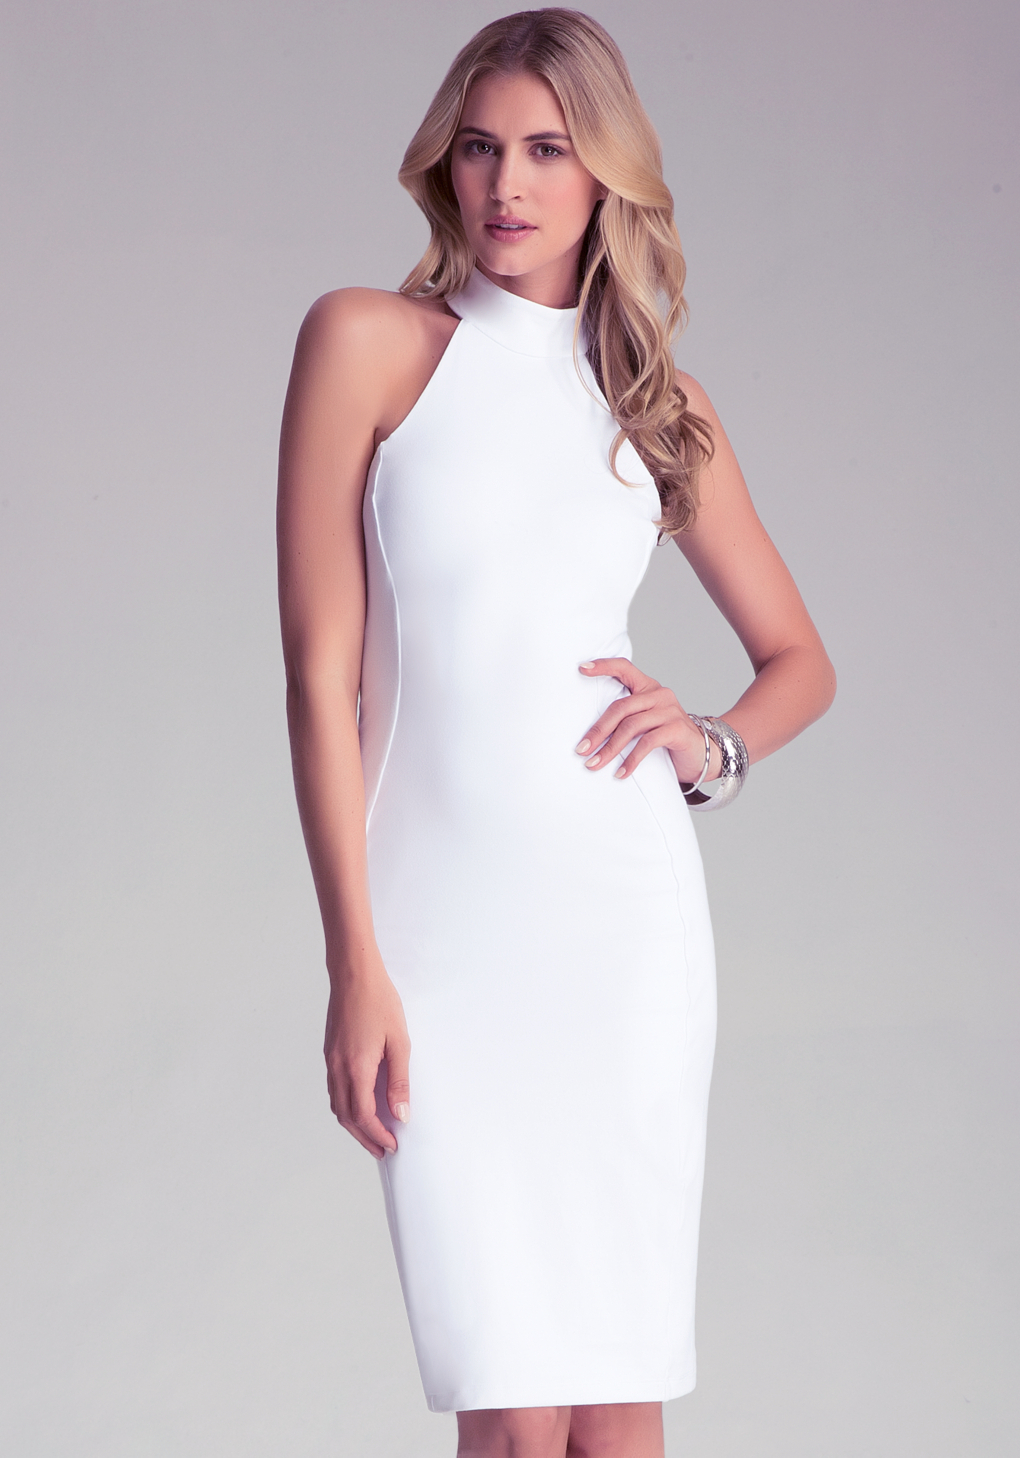 Gallery Women S White Tail Dresses